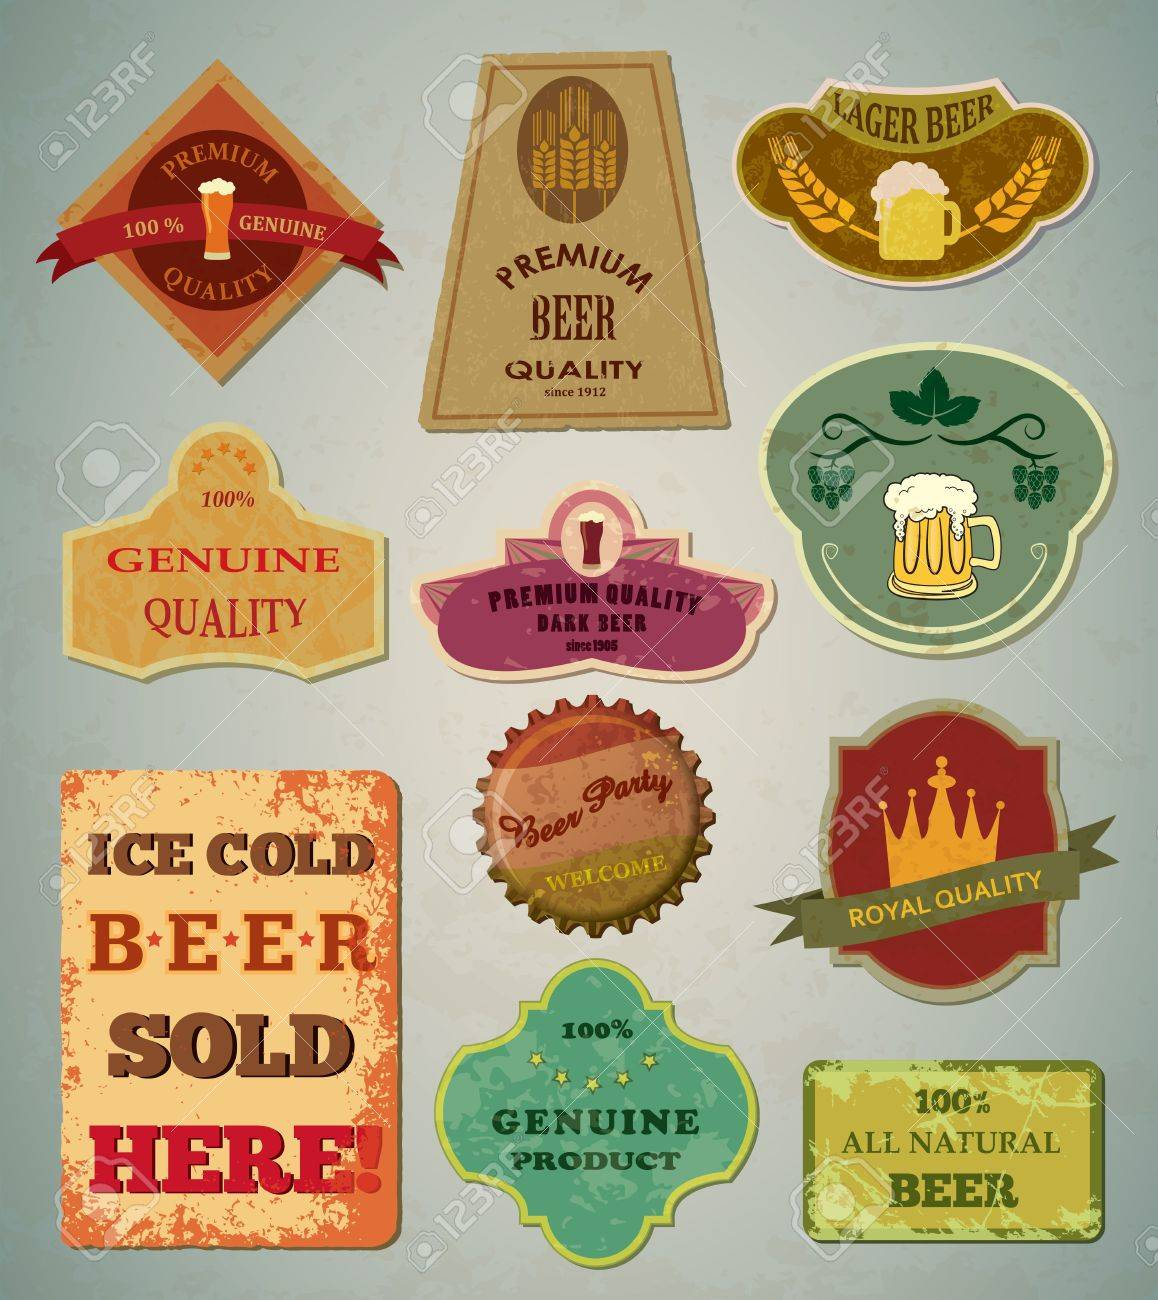 20,079 Label Beer Stock Vector Illustration And Royalty Free Label ...